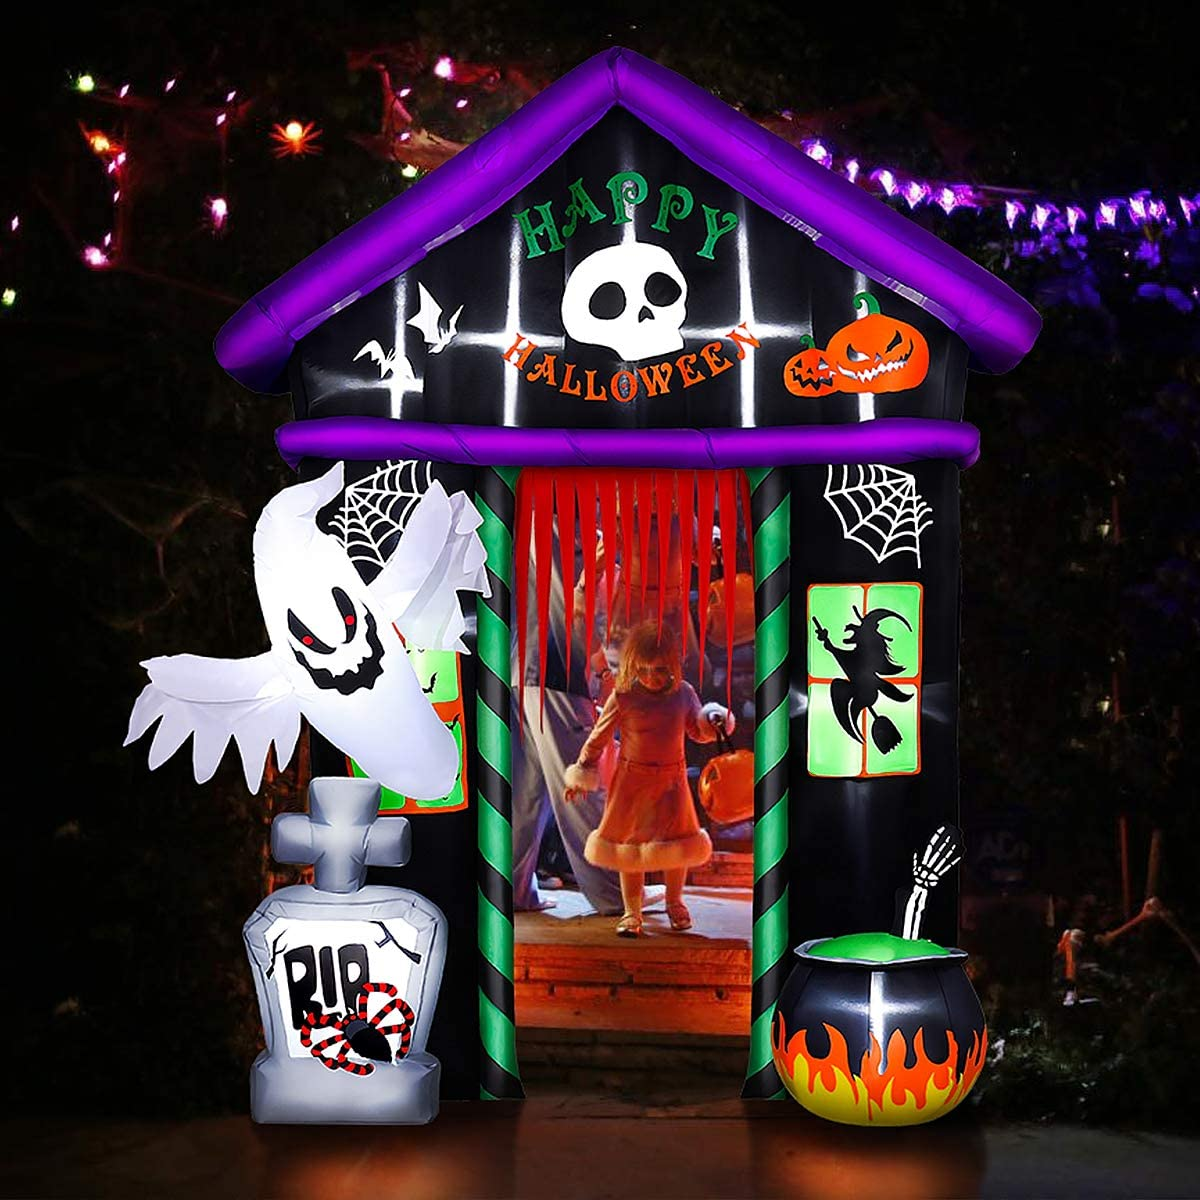 Inflatable Decoration For Holiday Party, 9 FT Tall Halloween Inflatable Haunted House Blow Up Lighted Decor